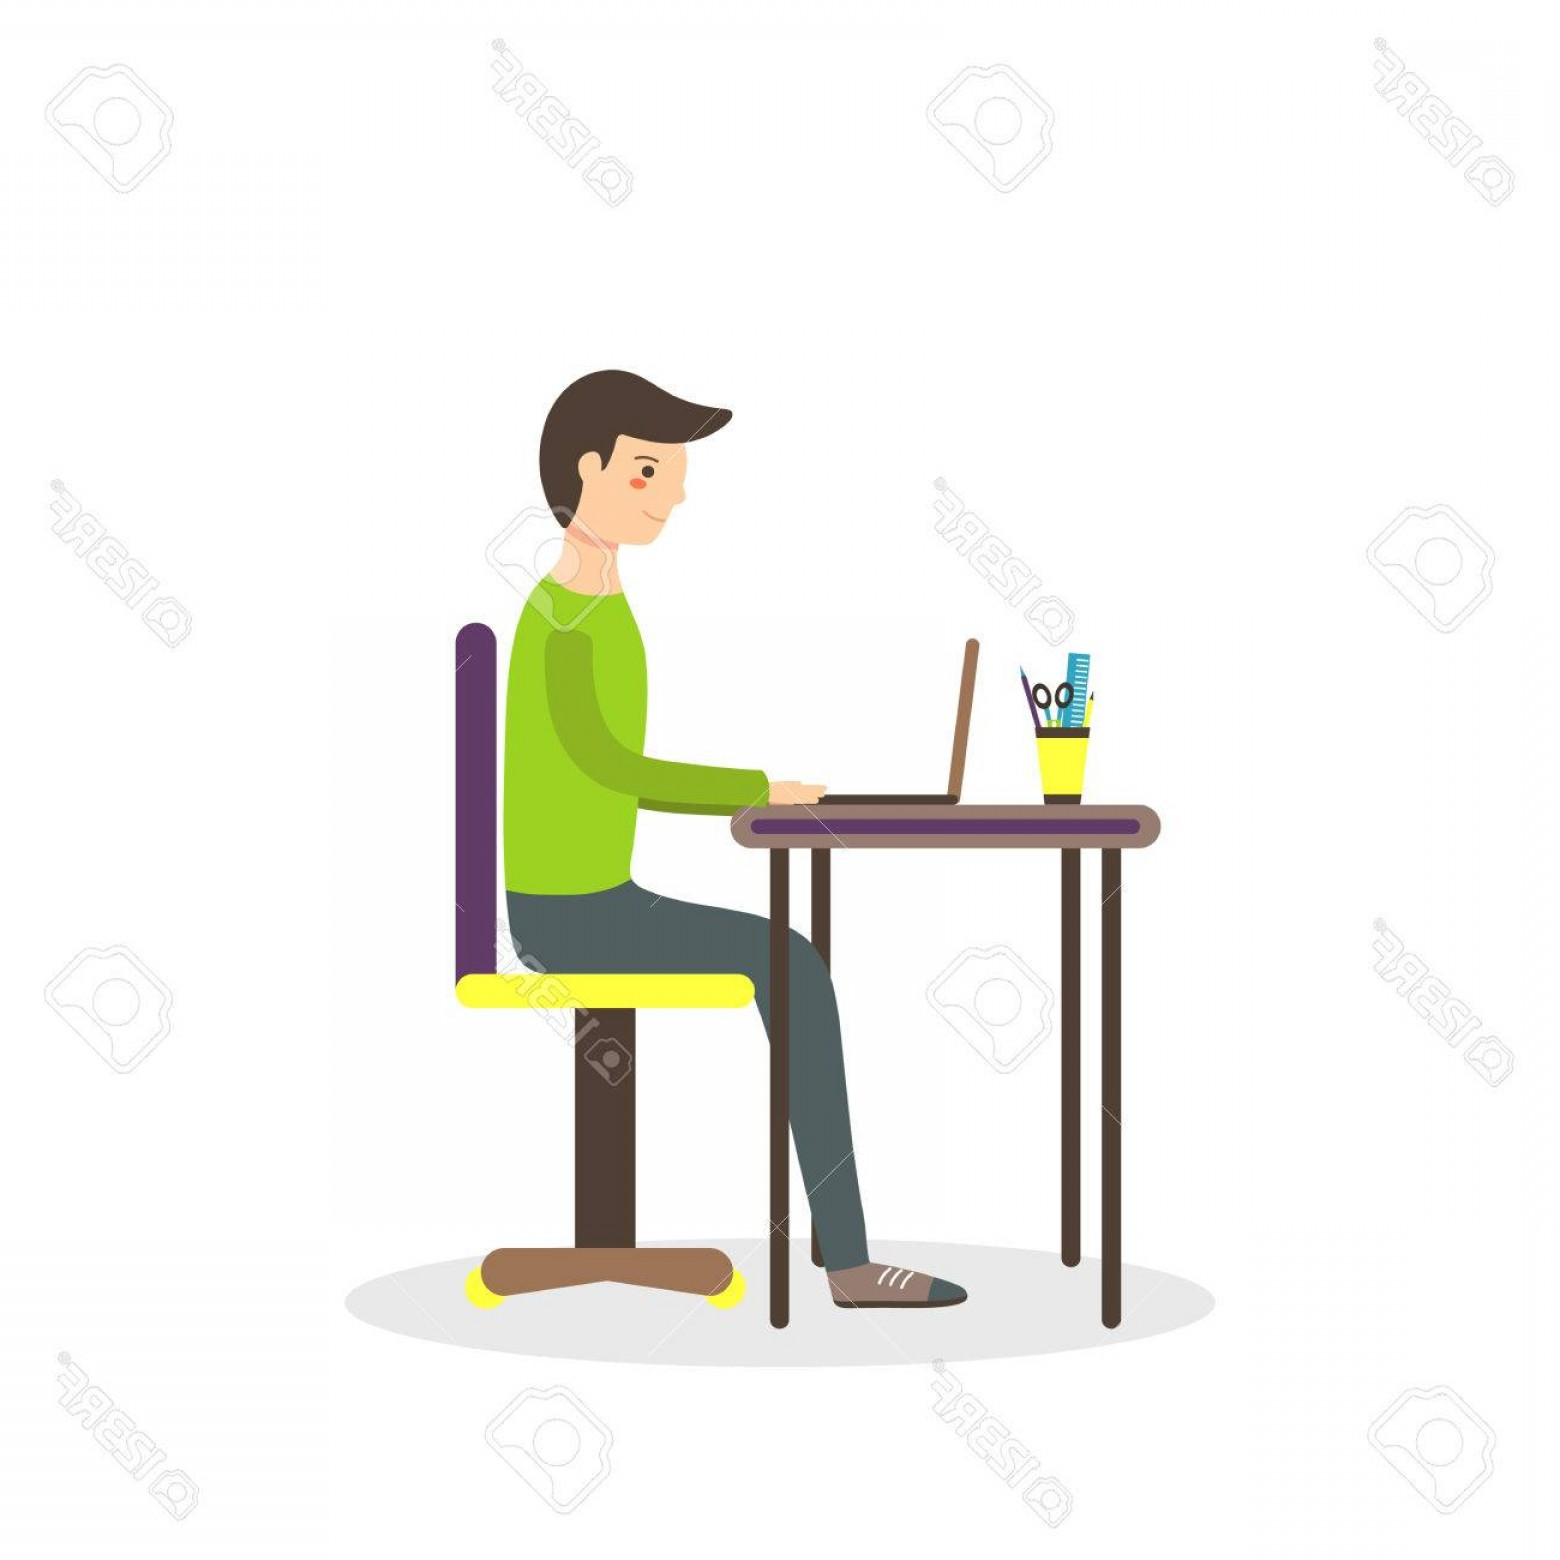 Ways To Write Vector BA: Photostock Vector Flat Style Man Student Sitting On The Chair With Laptop On The Table And Writing His Dissertation Ba